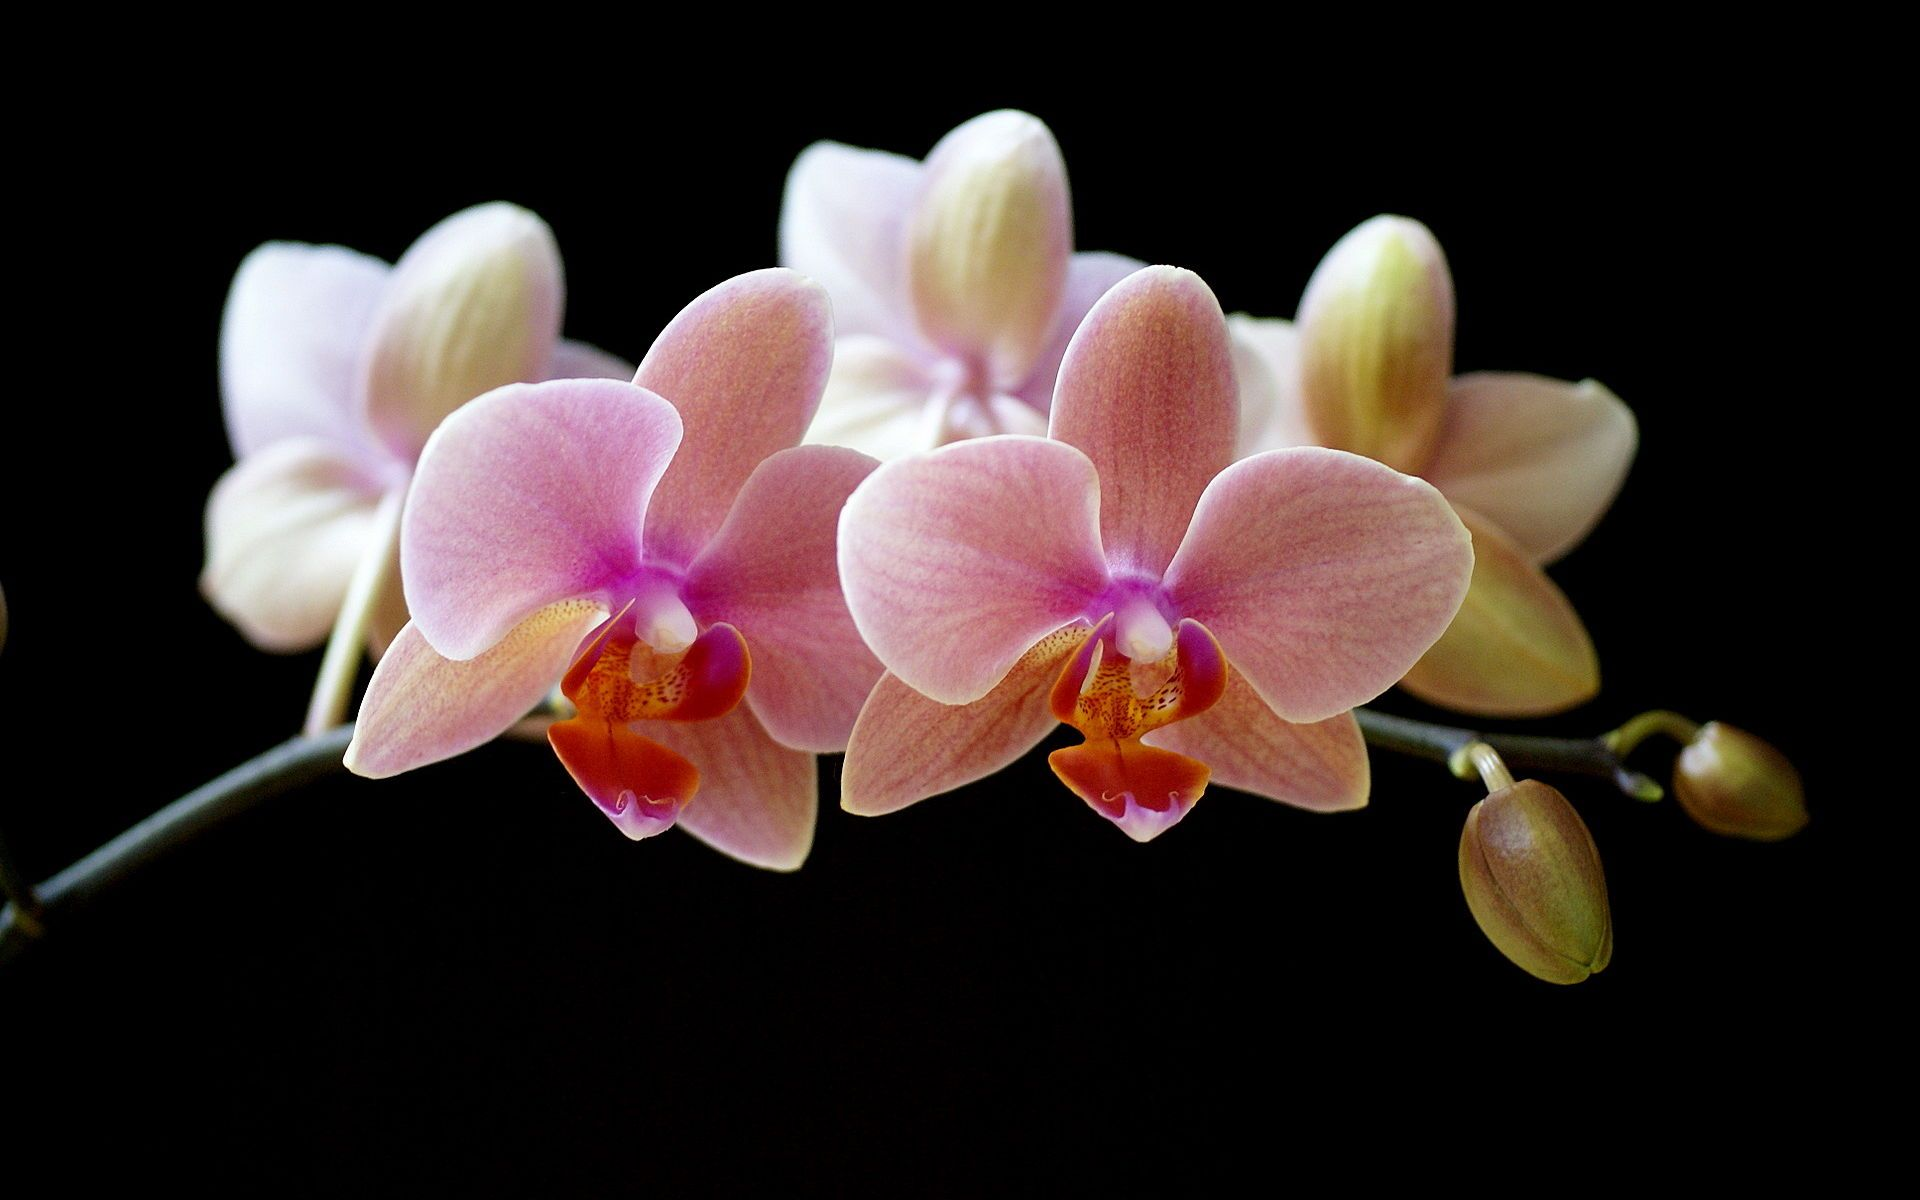 Toronto Photography Collective Orchid Flower Orchid Wallpaper Orchids